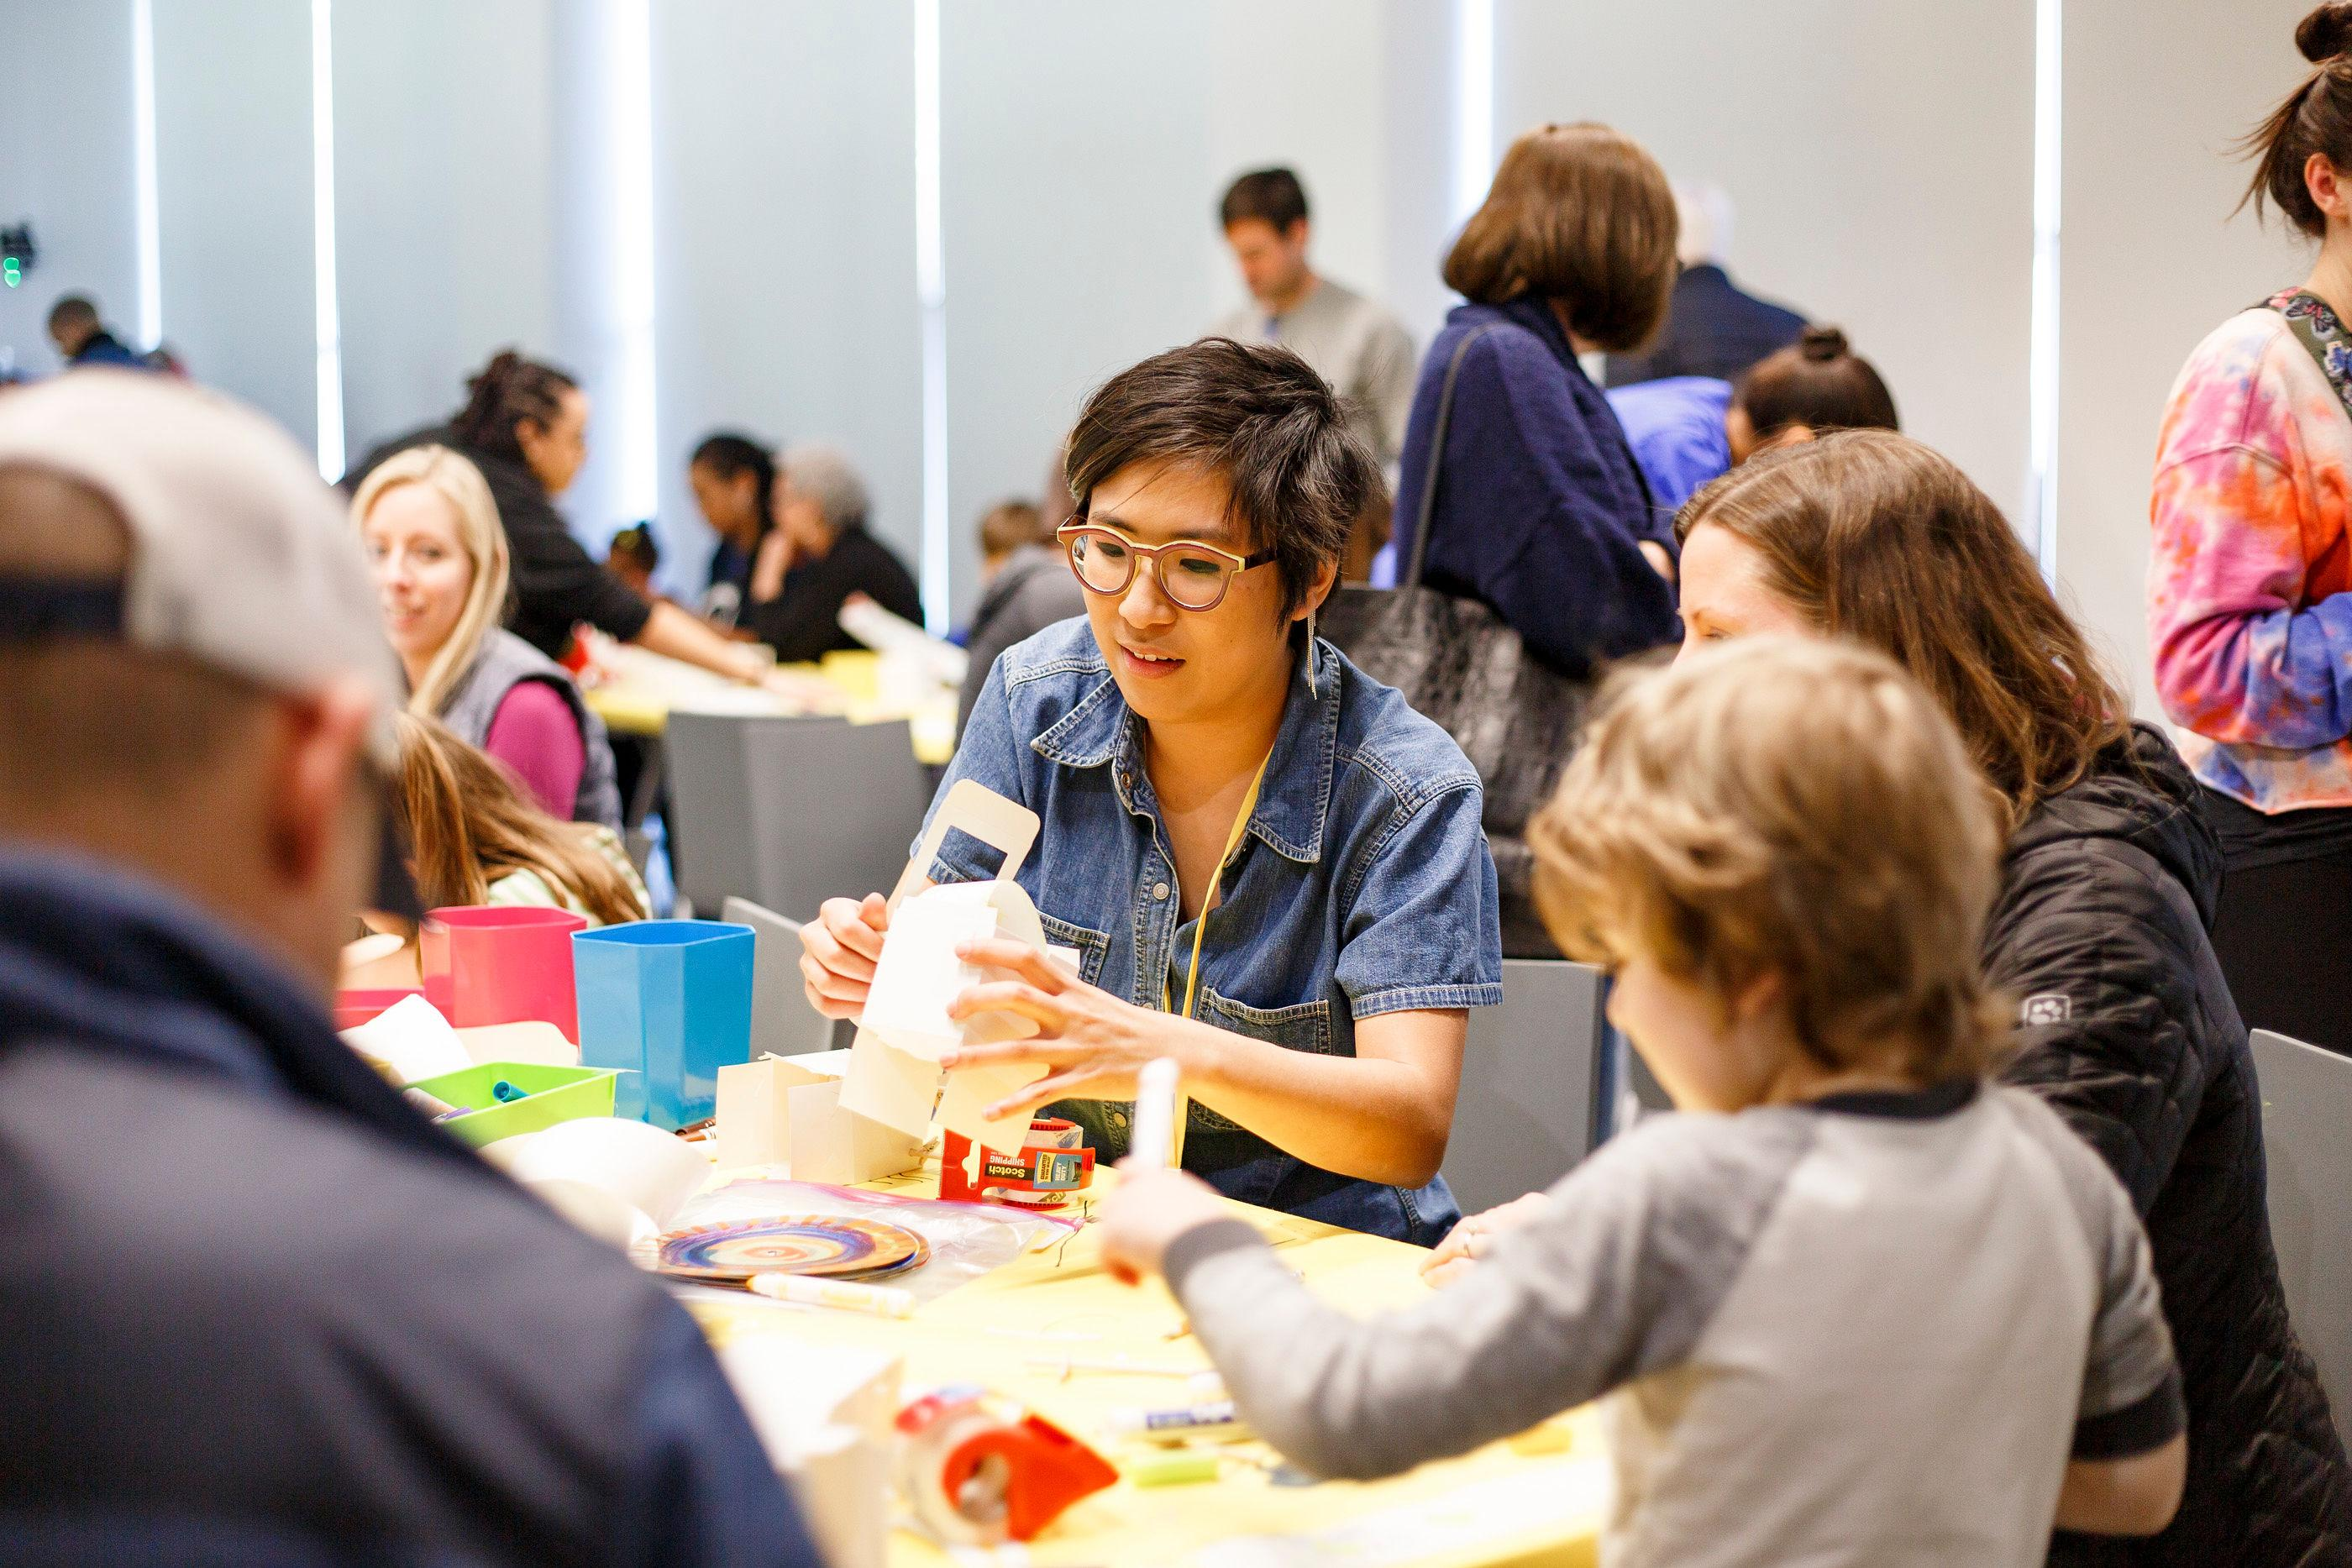 Smiling adults and children sit at tables creating objects with various material provided.